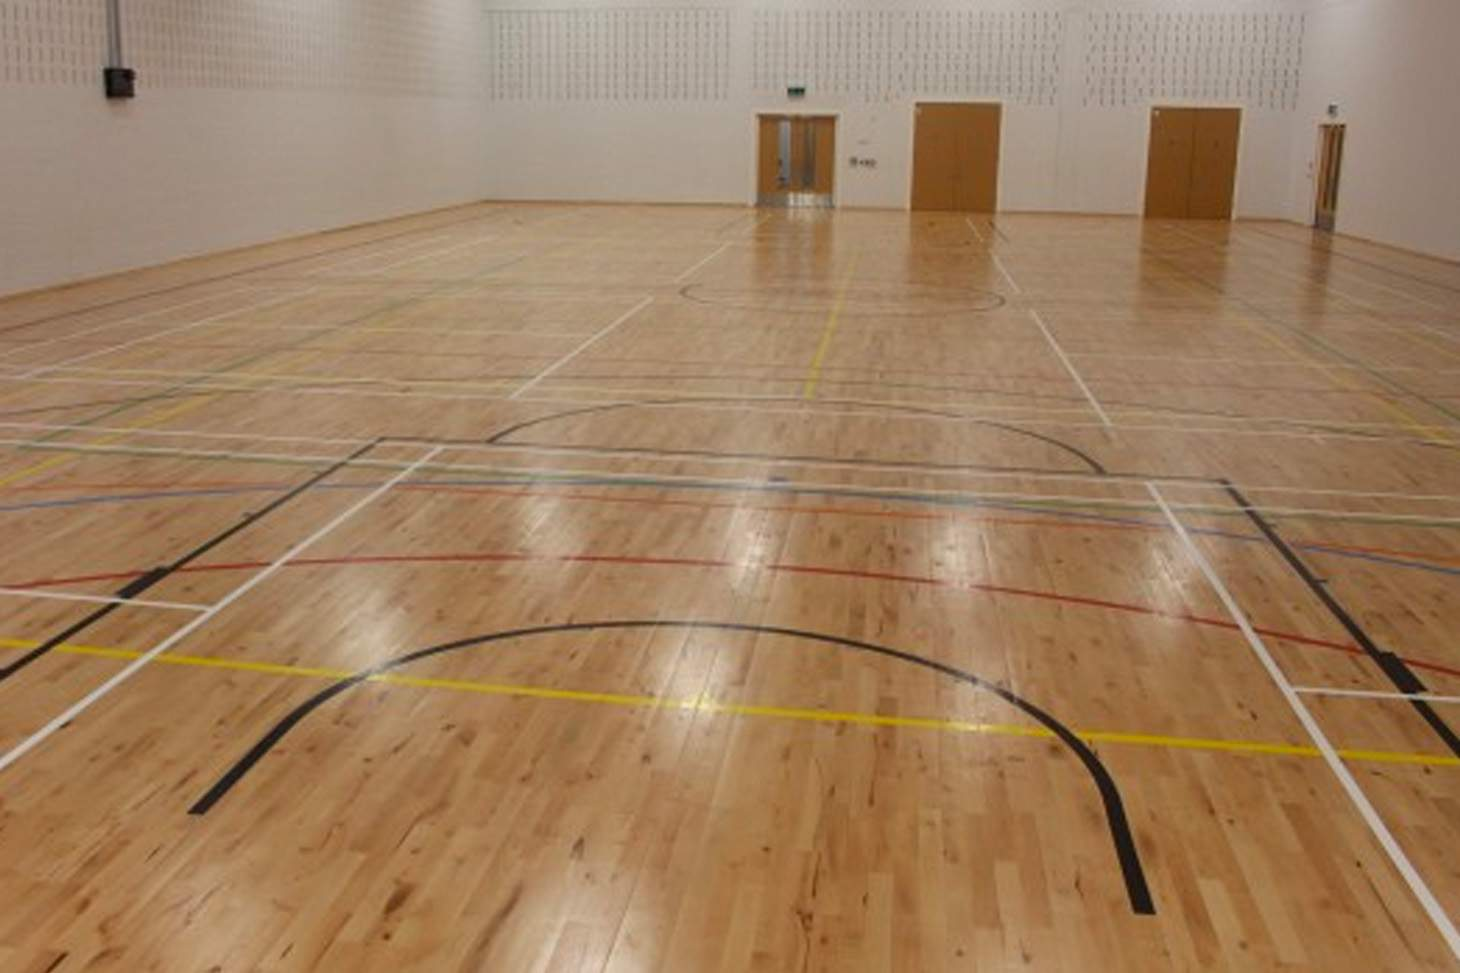 Kensington Primary Academy Sports hall space hire